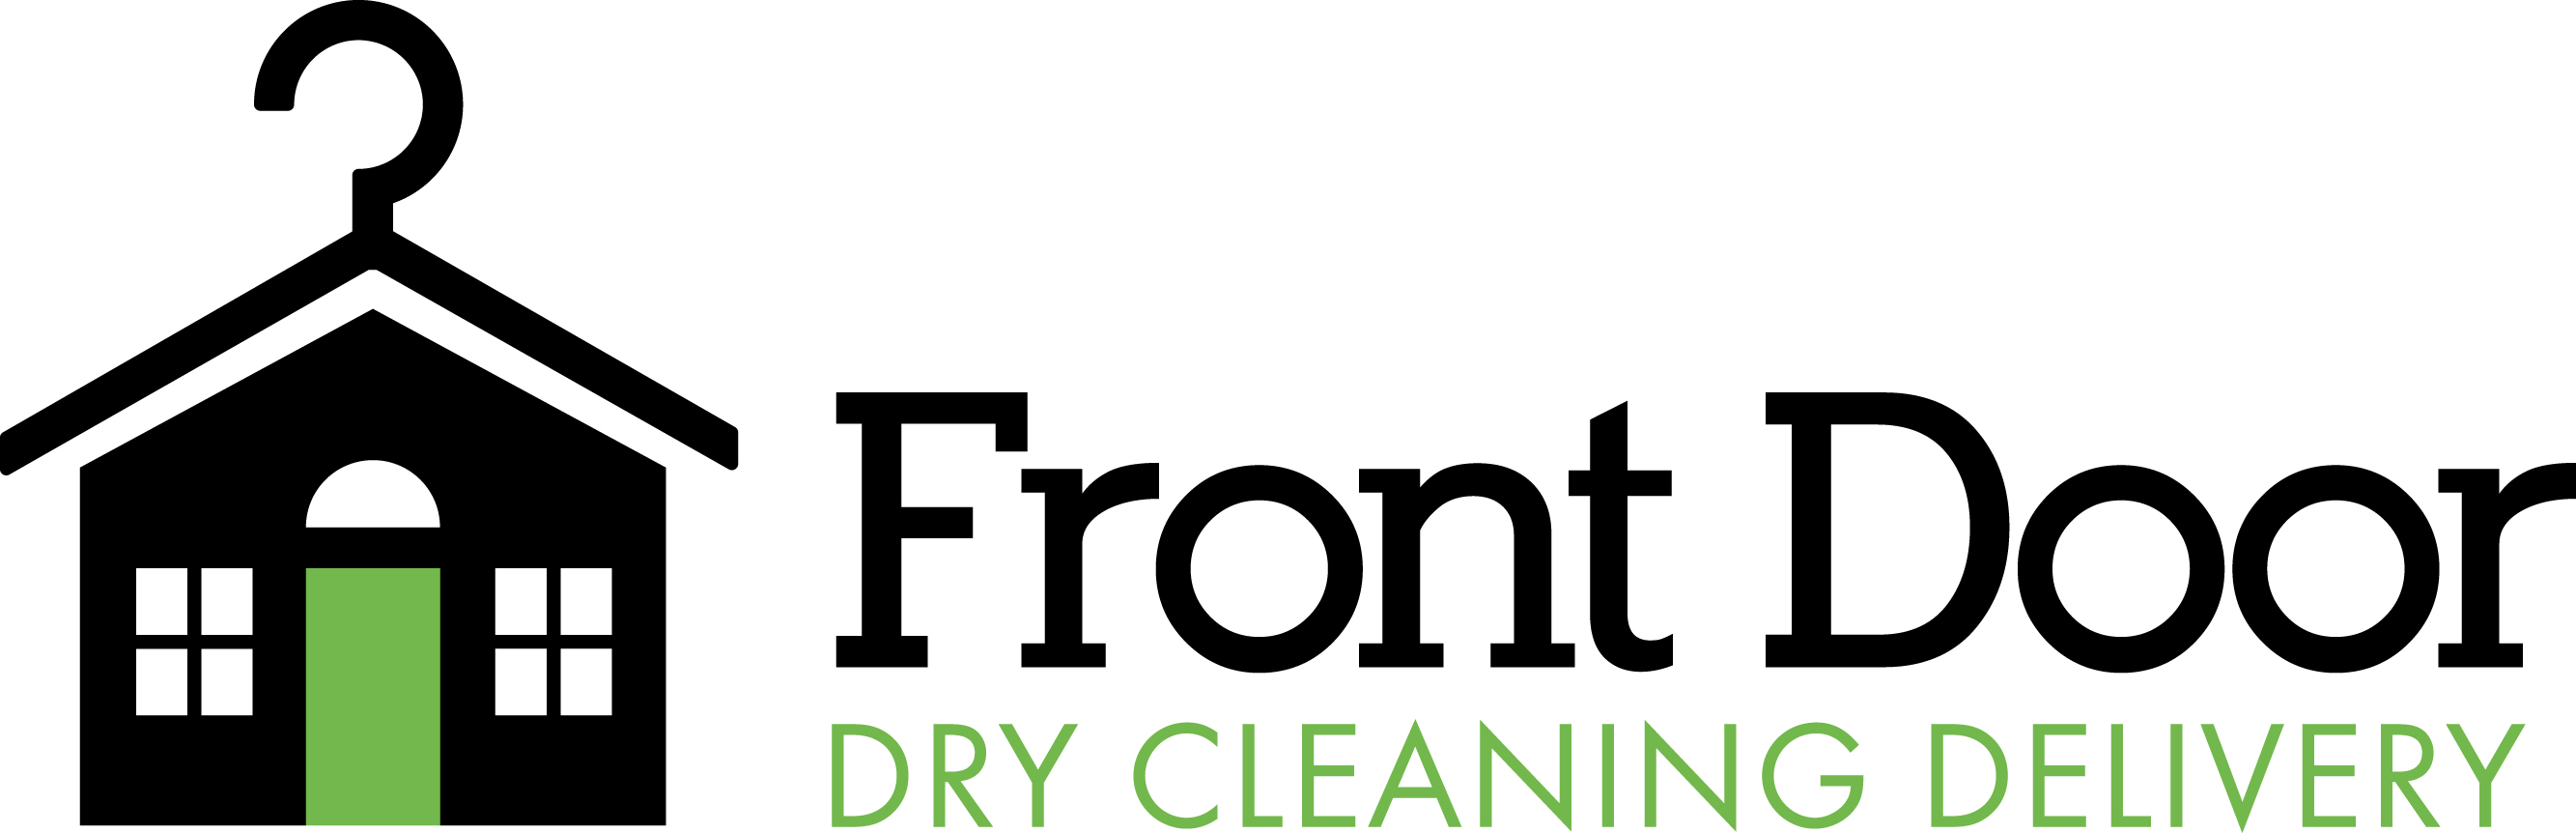 Dry Cleaning Delivery In Kansas City Pickup And Delivery